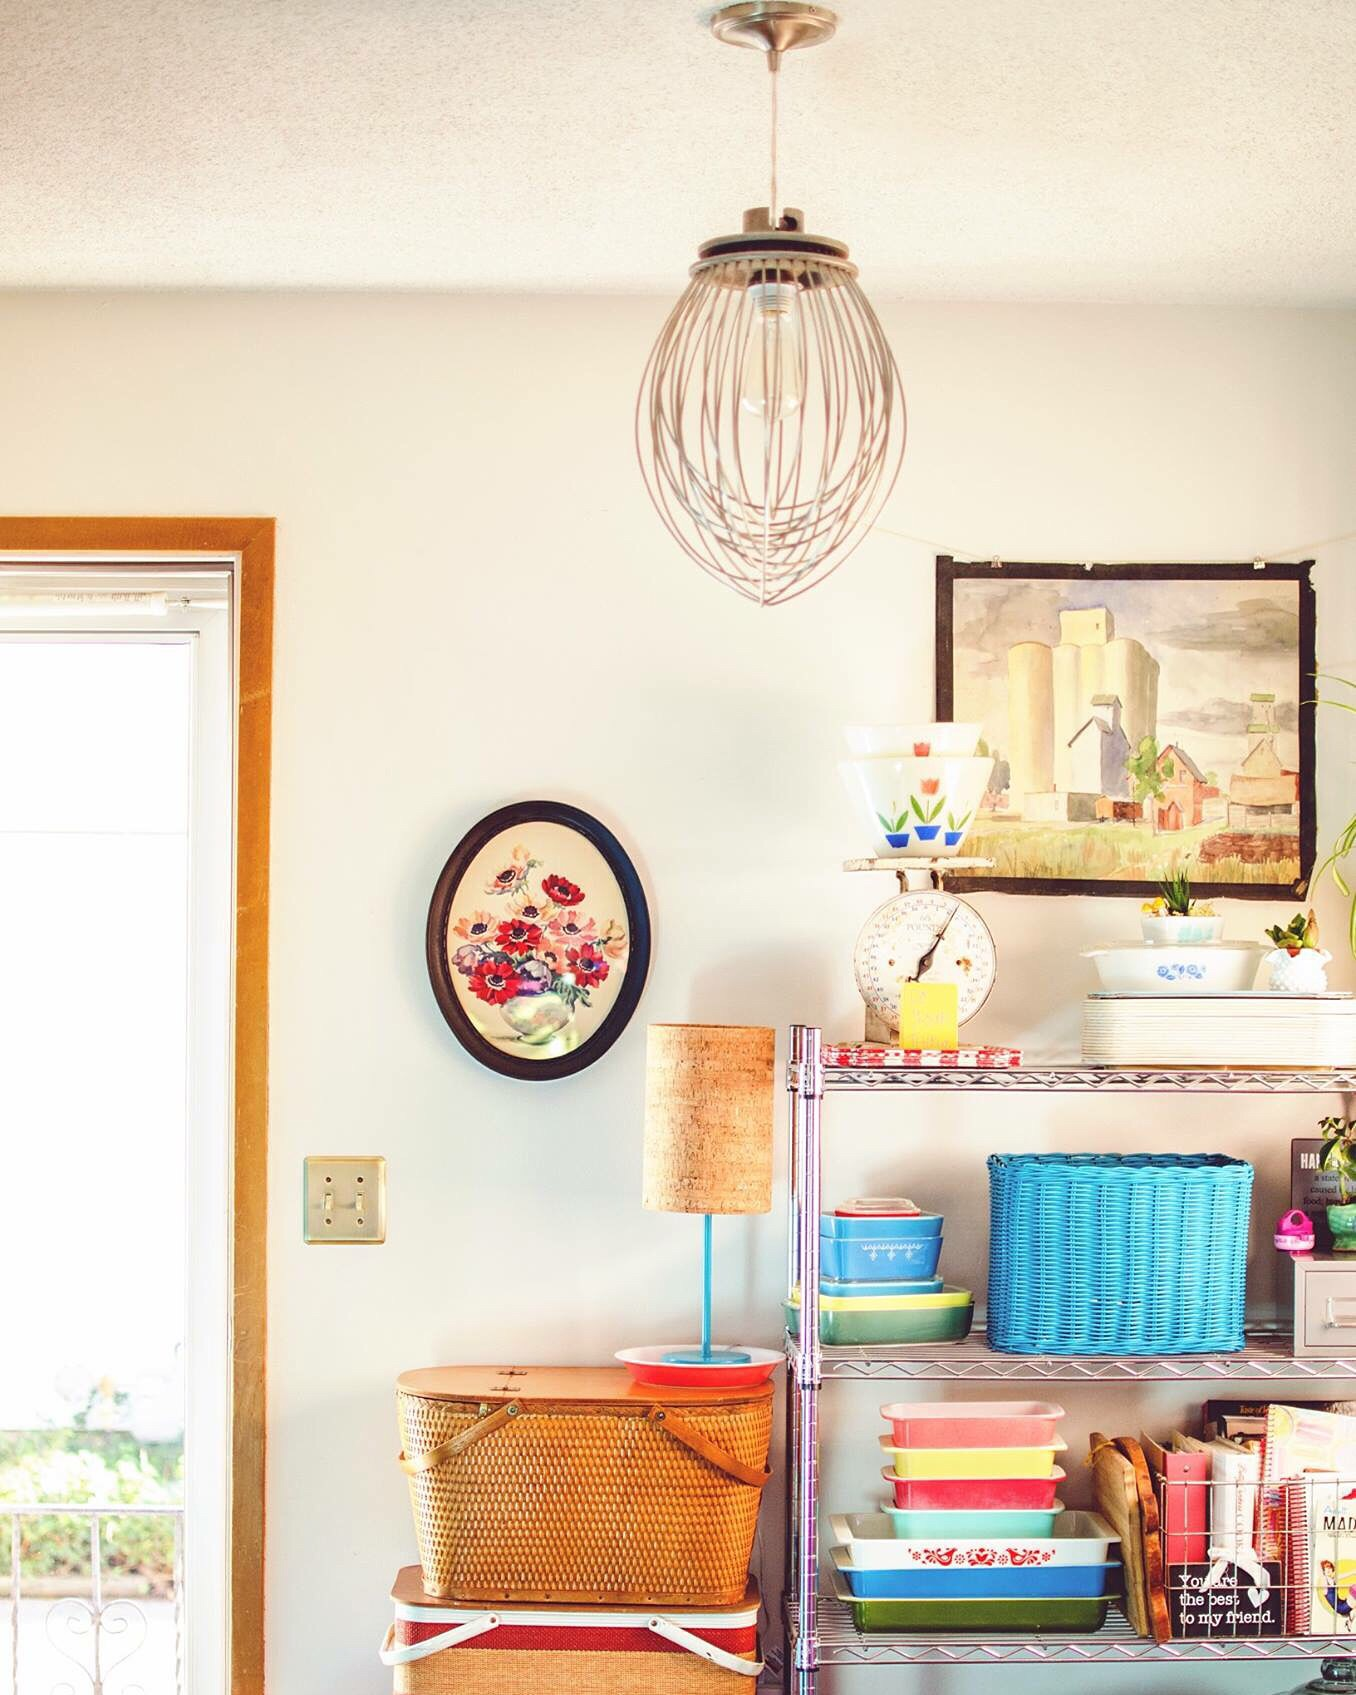 Mixer whip light fixture above a metal shelf decorated with colorful vintage dishes. || RustopiaConsulting.com